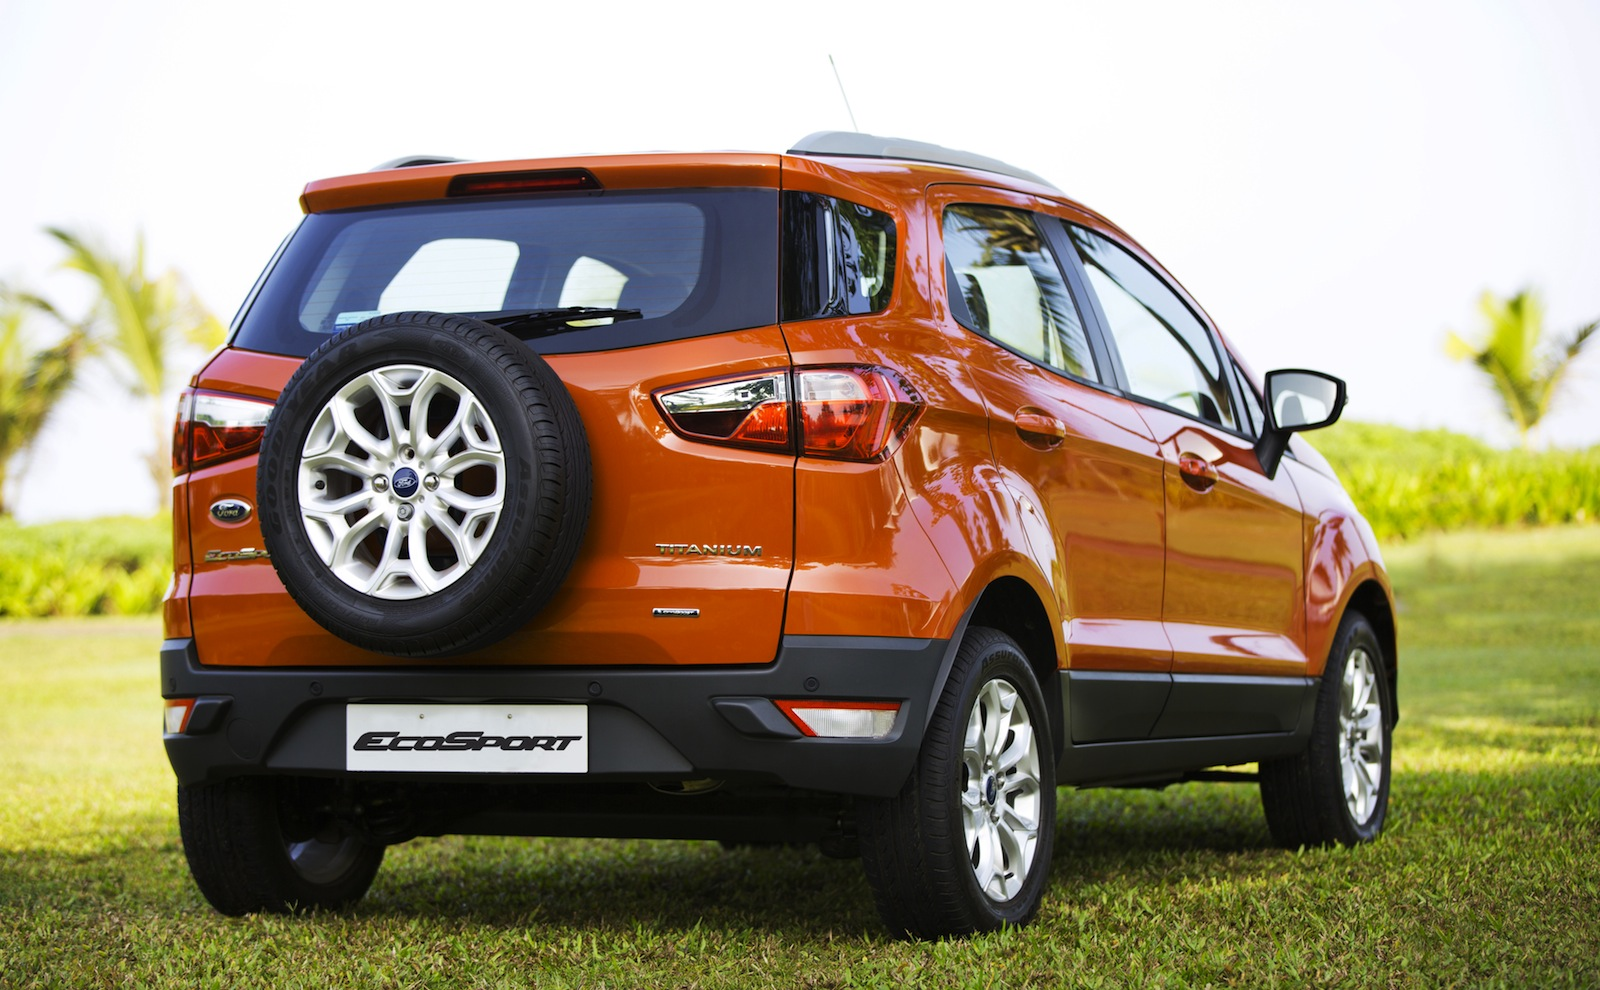 New Ford EcoSport pictures & Ford EcoSport photos - PhotoGallery with 15 pics| CarsBase.com markmcfarlin.com